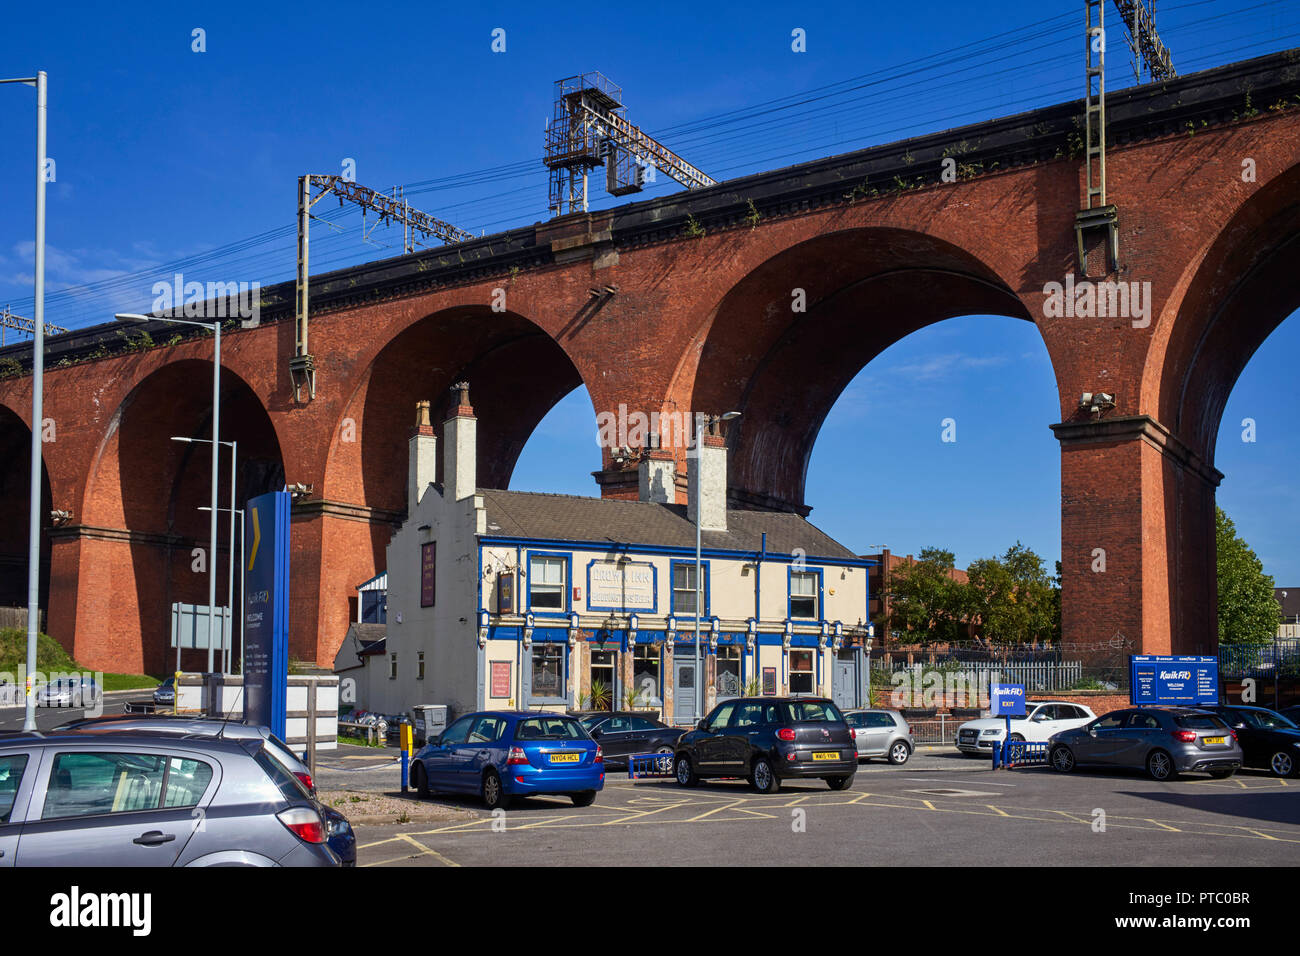 Crown Inn dwarfted and underneath the vast brick built railway viaduct at Stockport - Stock Image